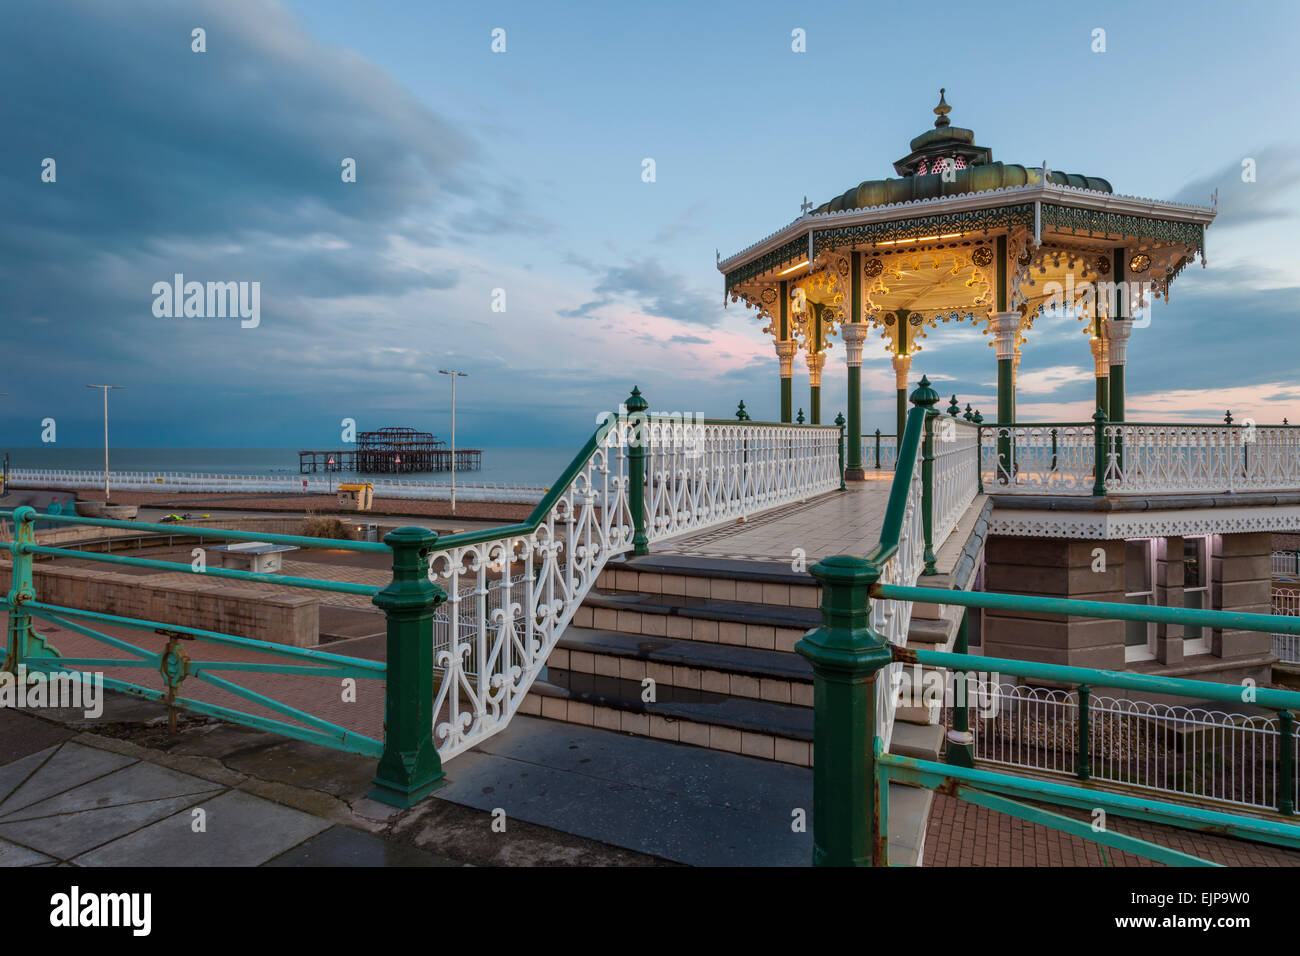 Soirée au kiosque à Brighton, East Sussex, Angleterre. Photo Stock